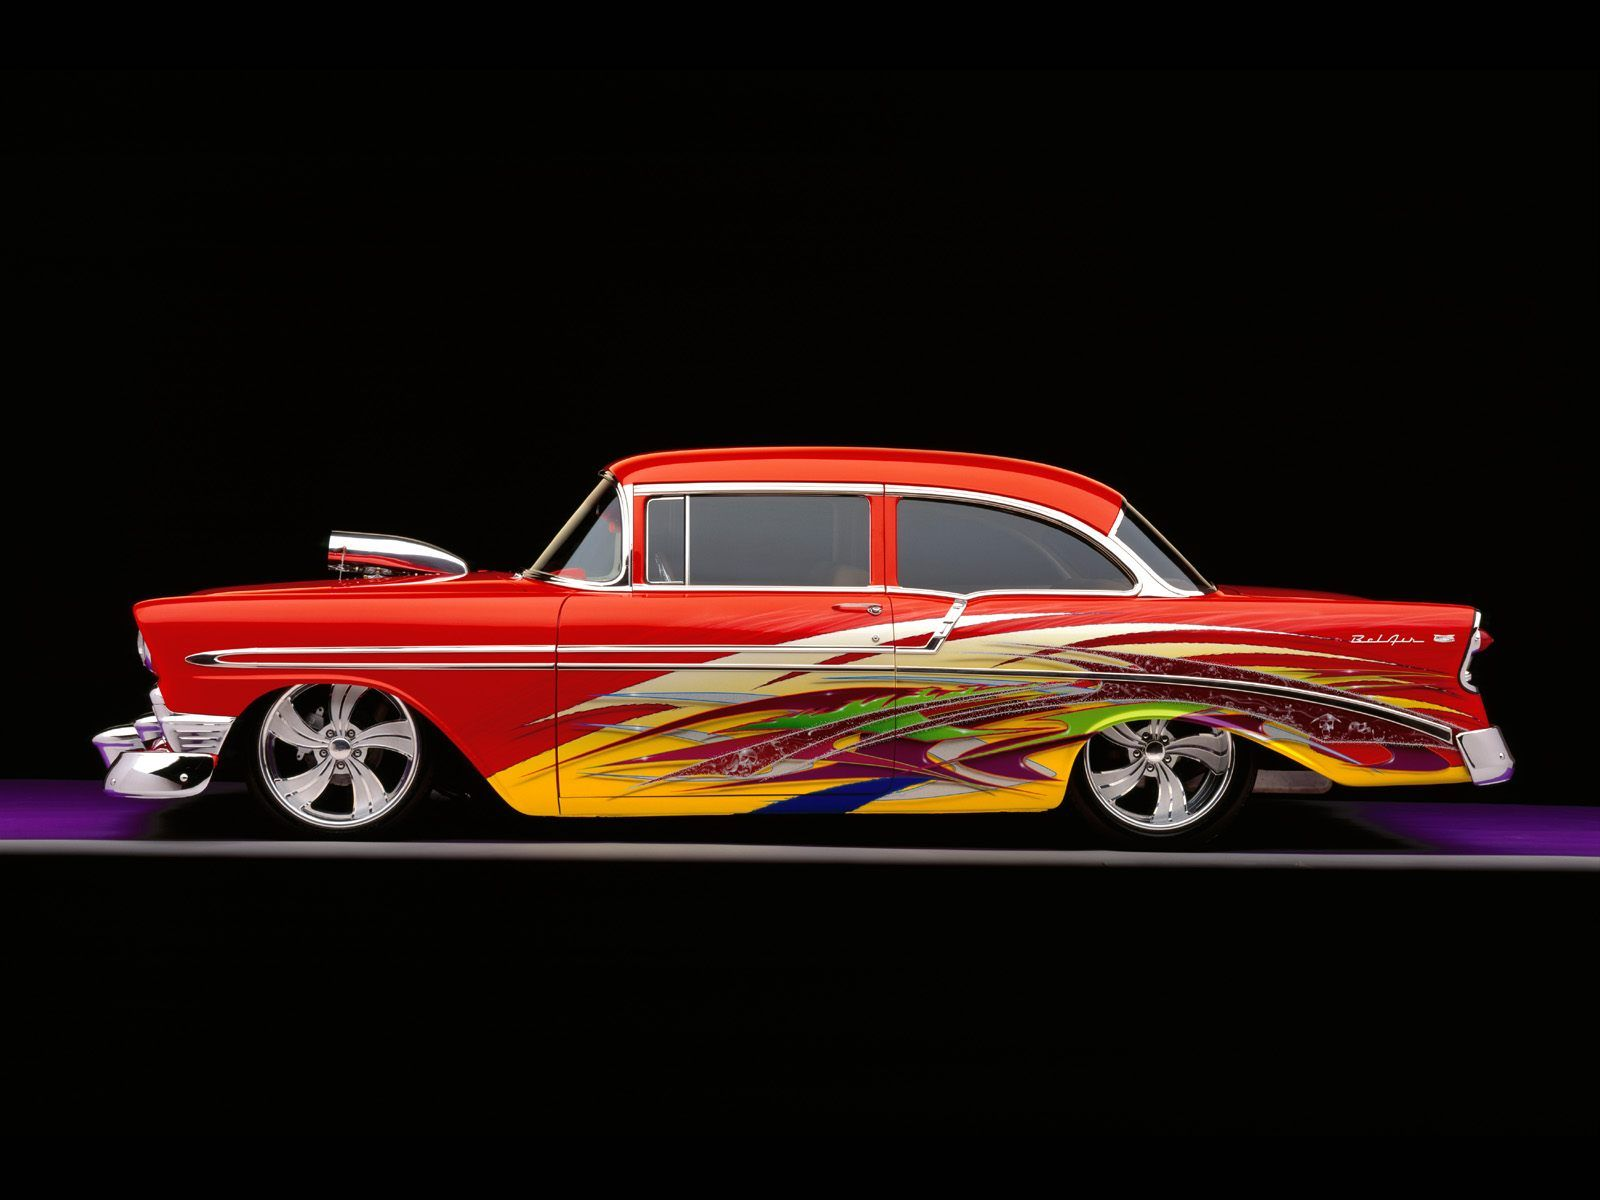 Custom Chevy Bel Air  AUTOMVILES  Pinterest  Chevy Cars and